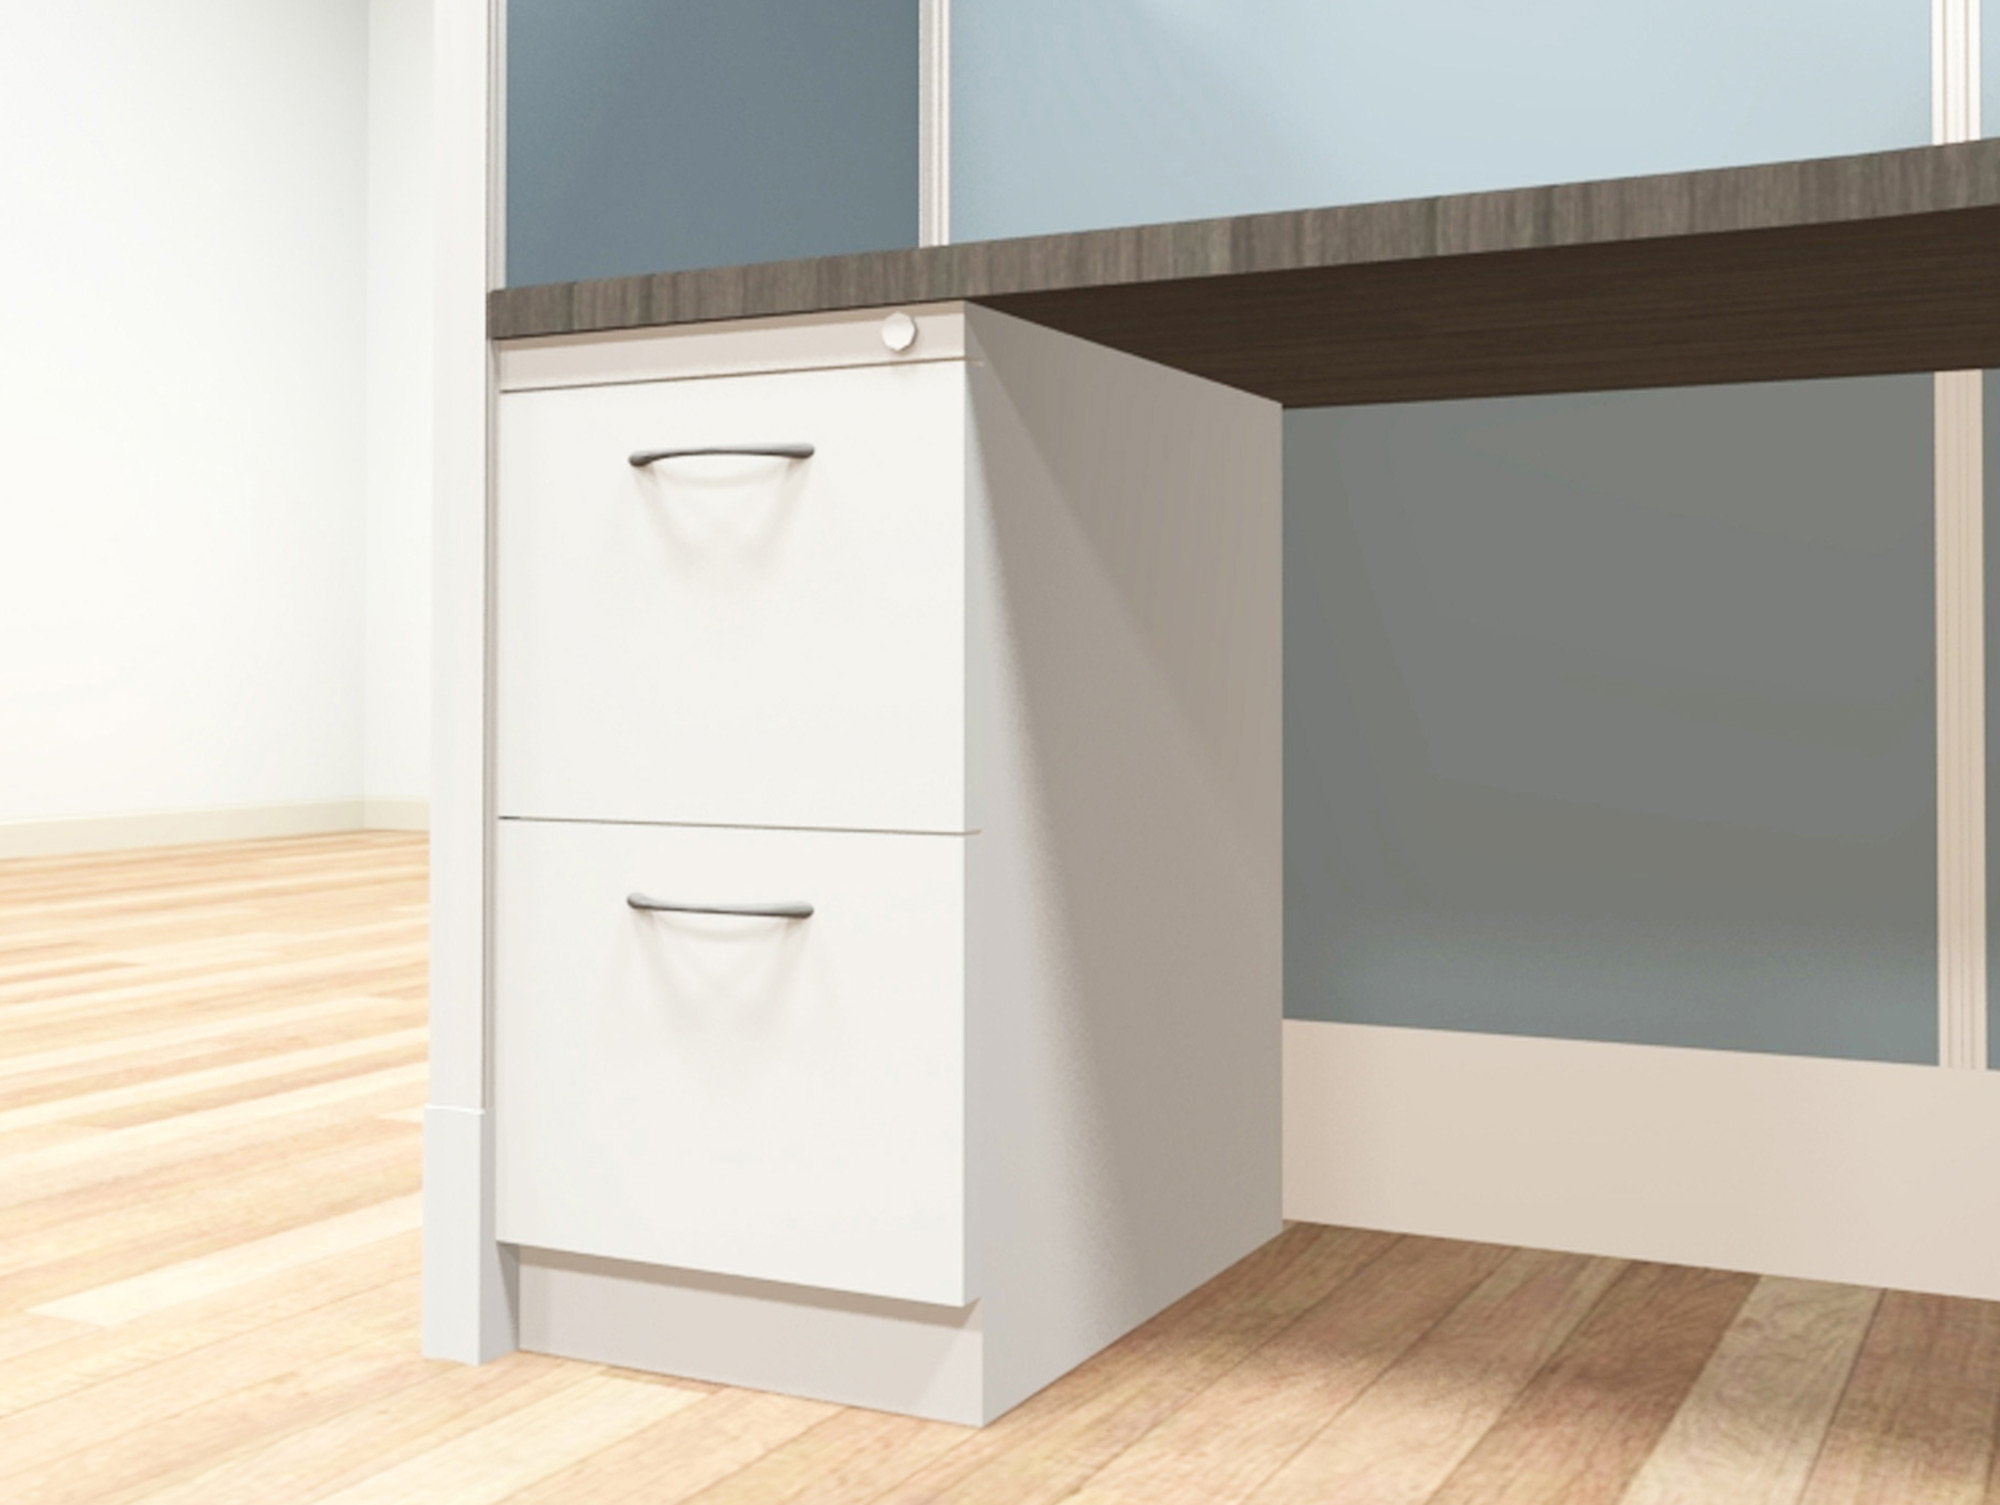 5x6 modular workstations from AIS - a �file-file� pedestal is an under-surface storage cabinet with two deep drawers designed for hanging files. Lock and key secures all drawers from unwanted visitors.